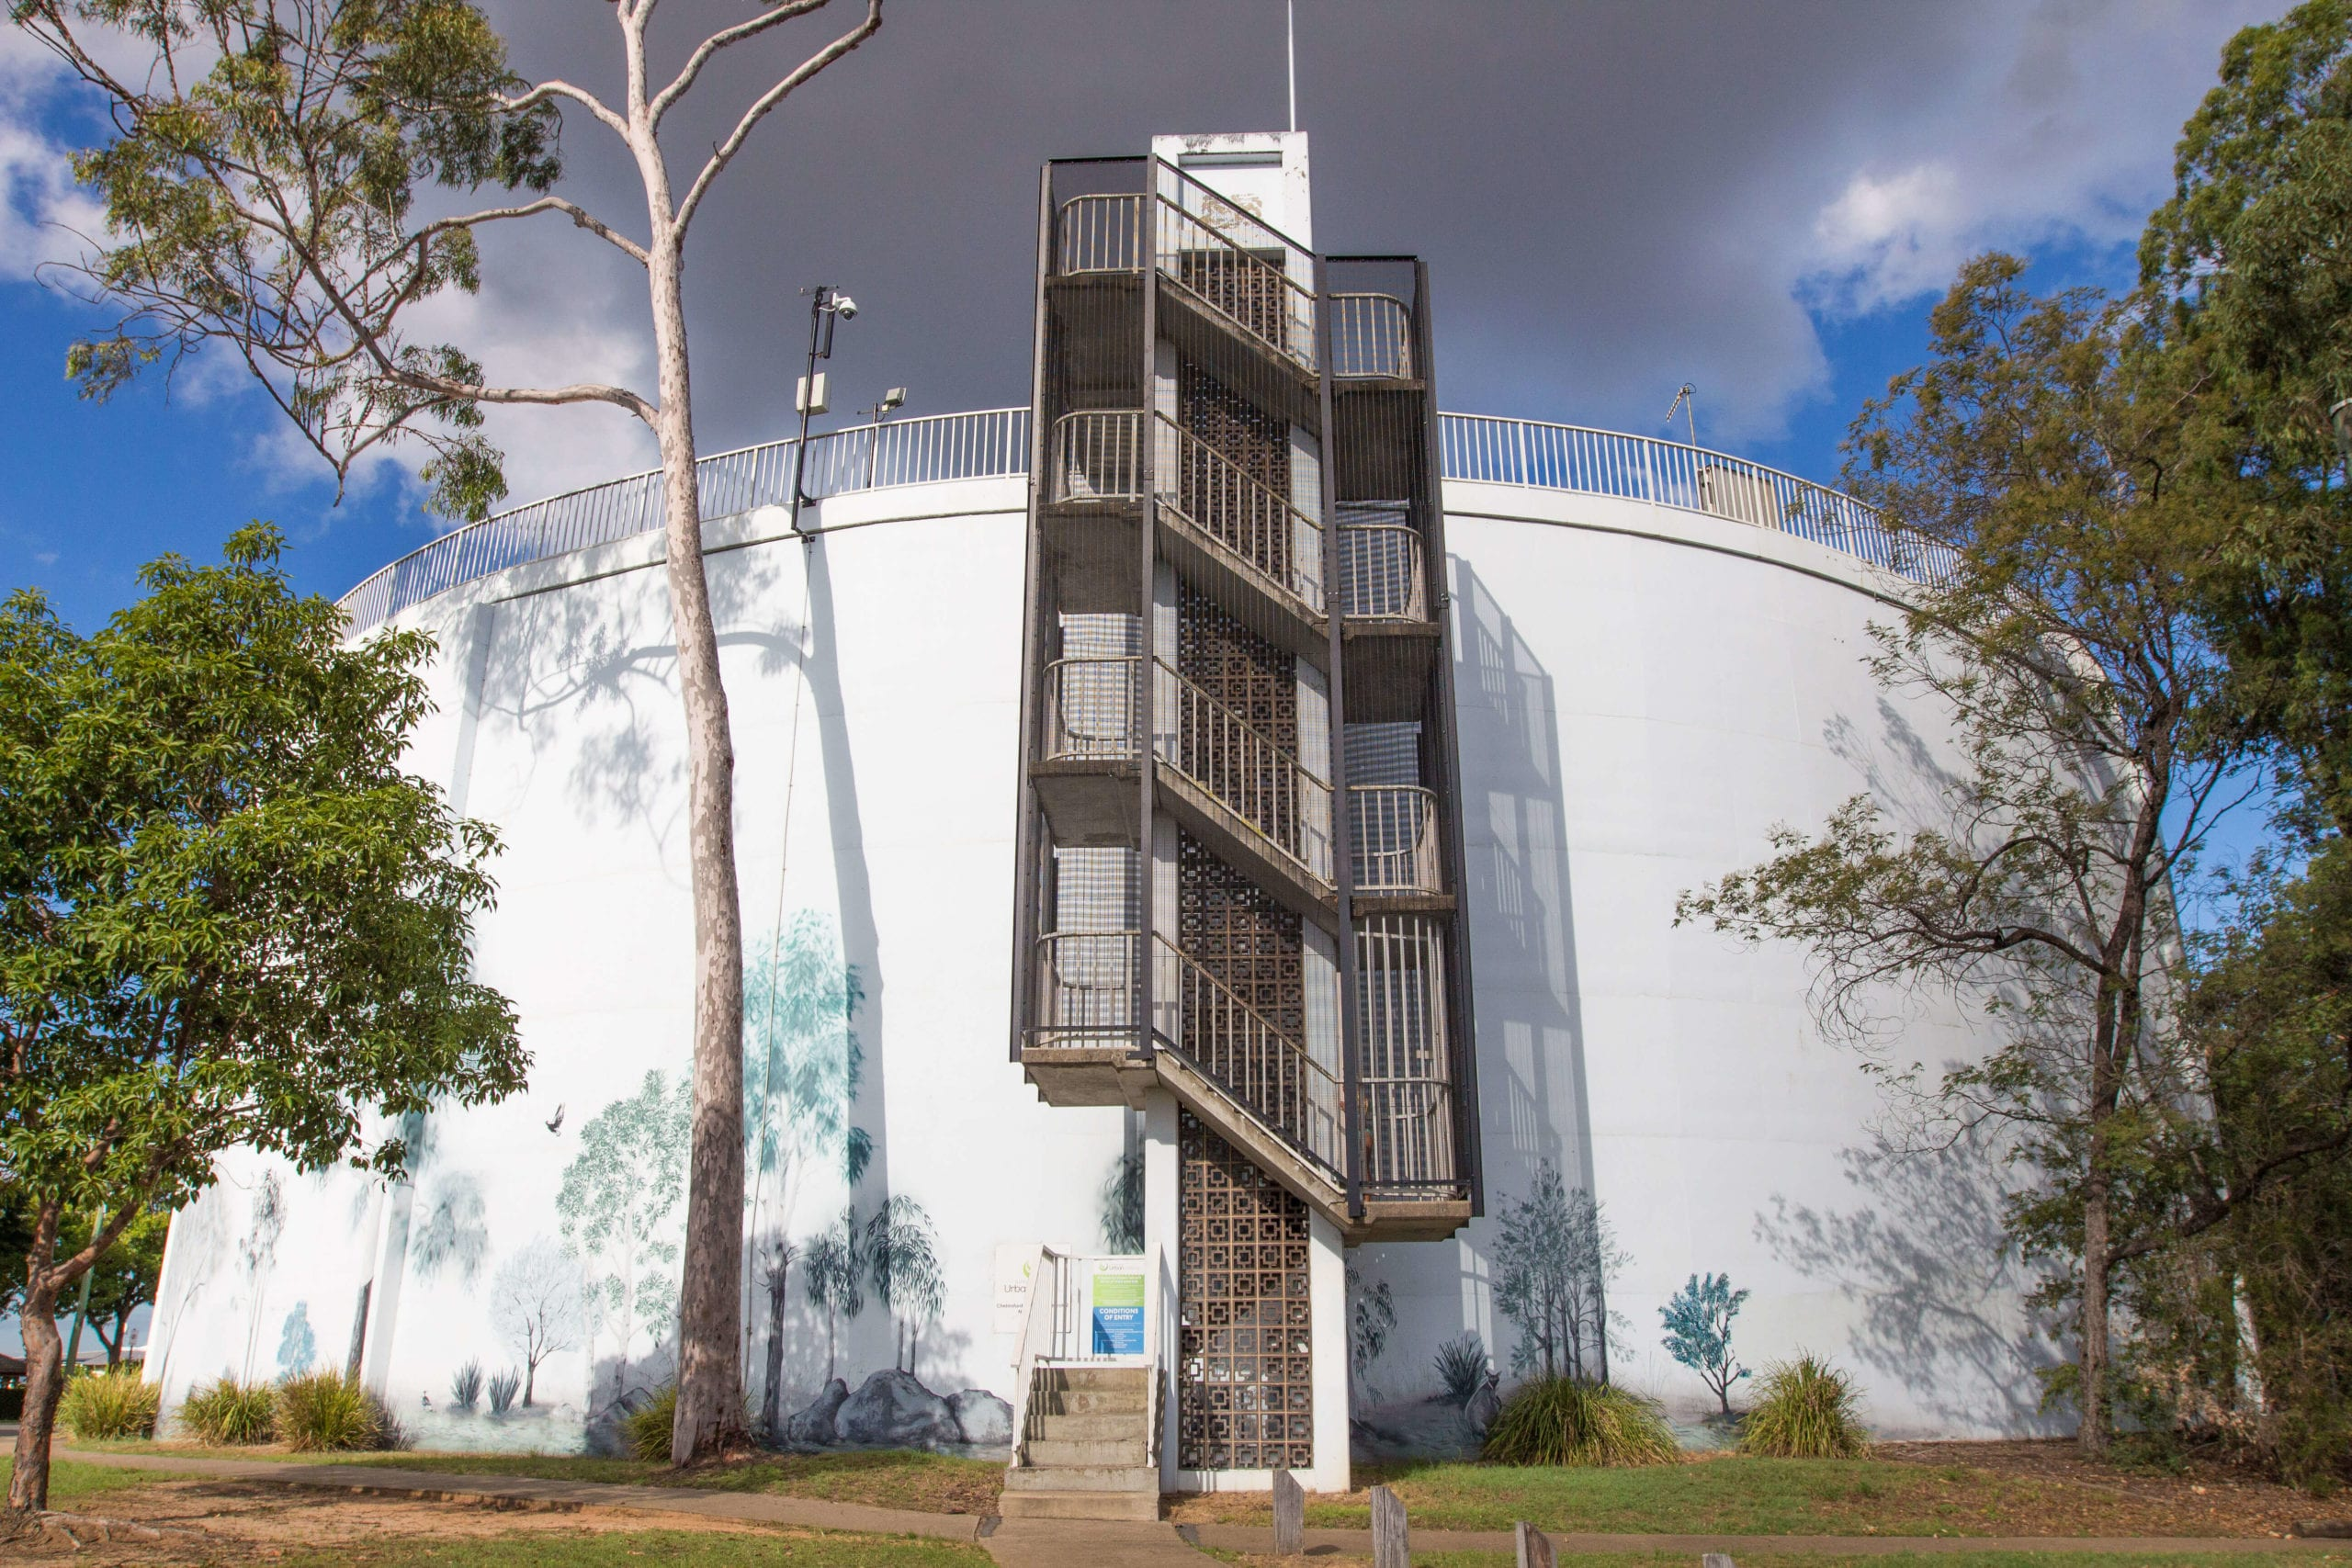 Denmark Hill water tower - Ipswich, Queensland,